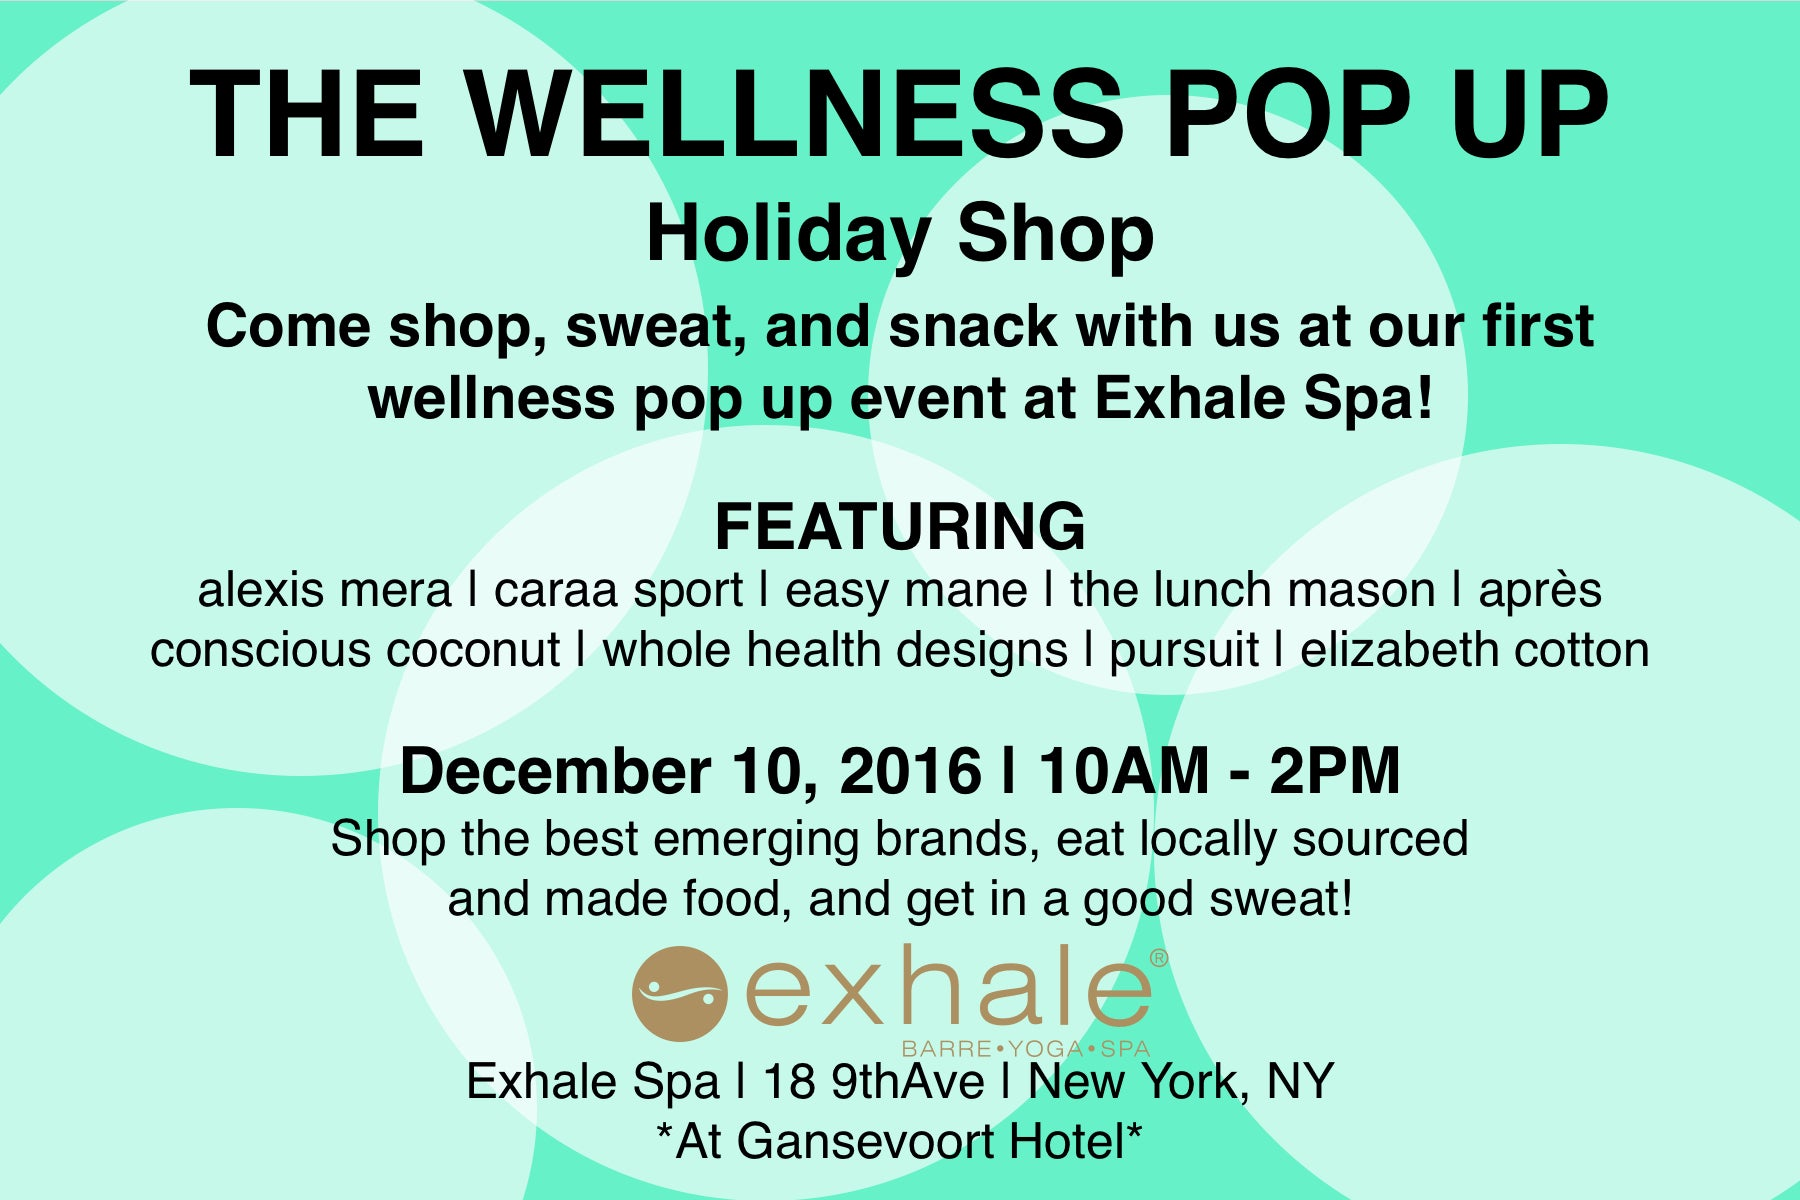 The Wellness Pop Up